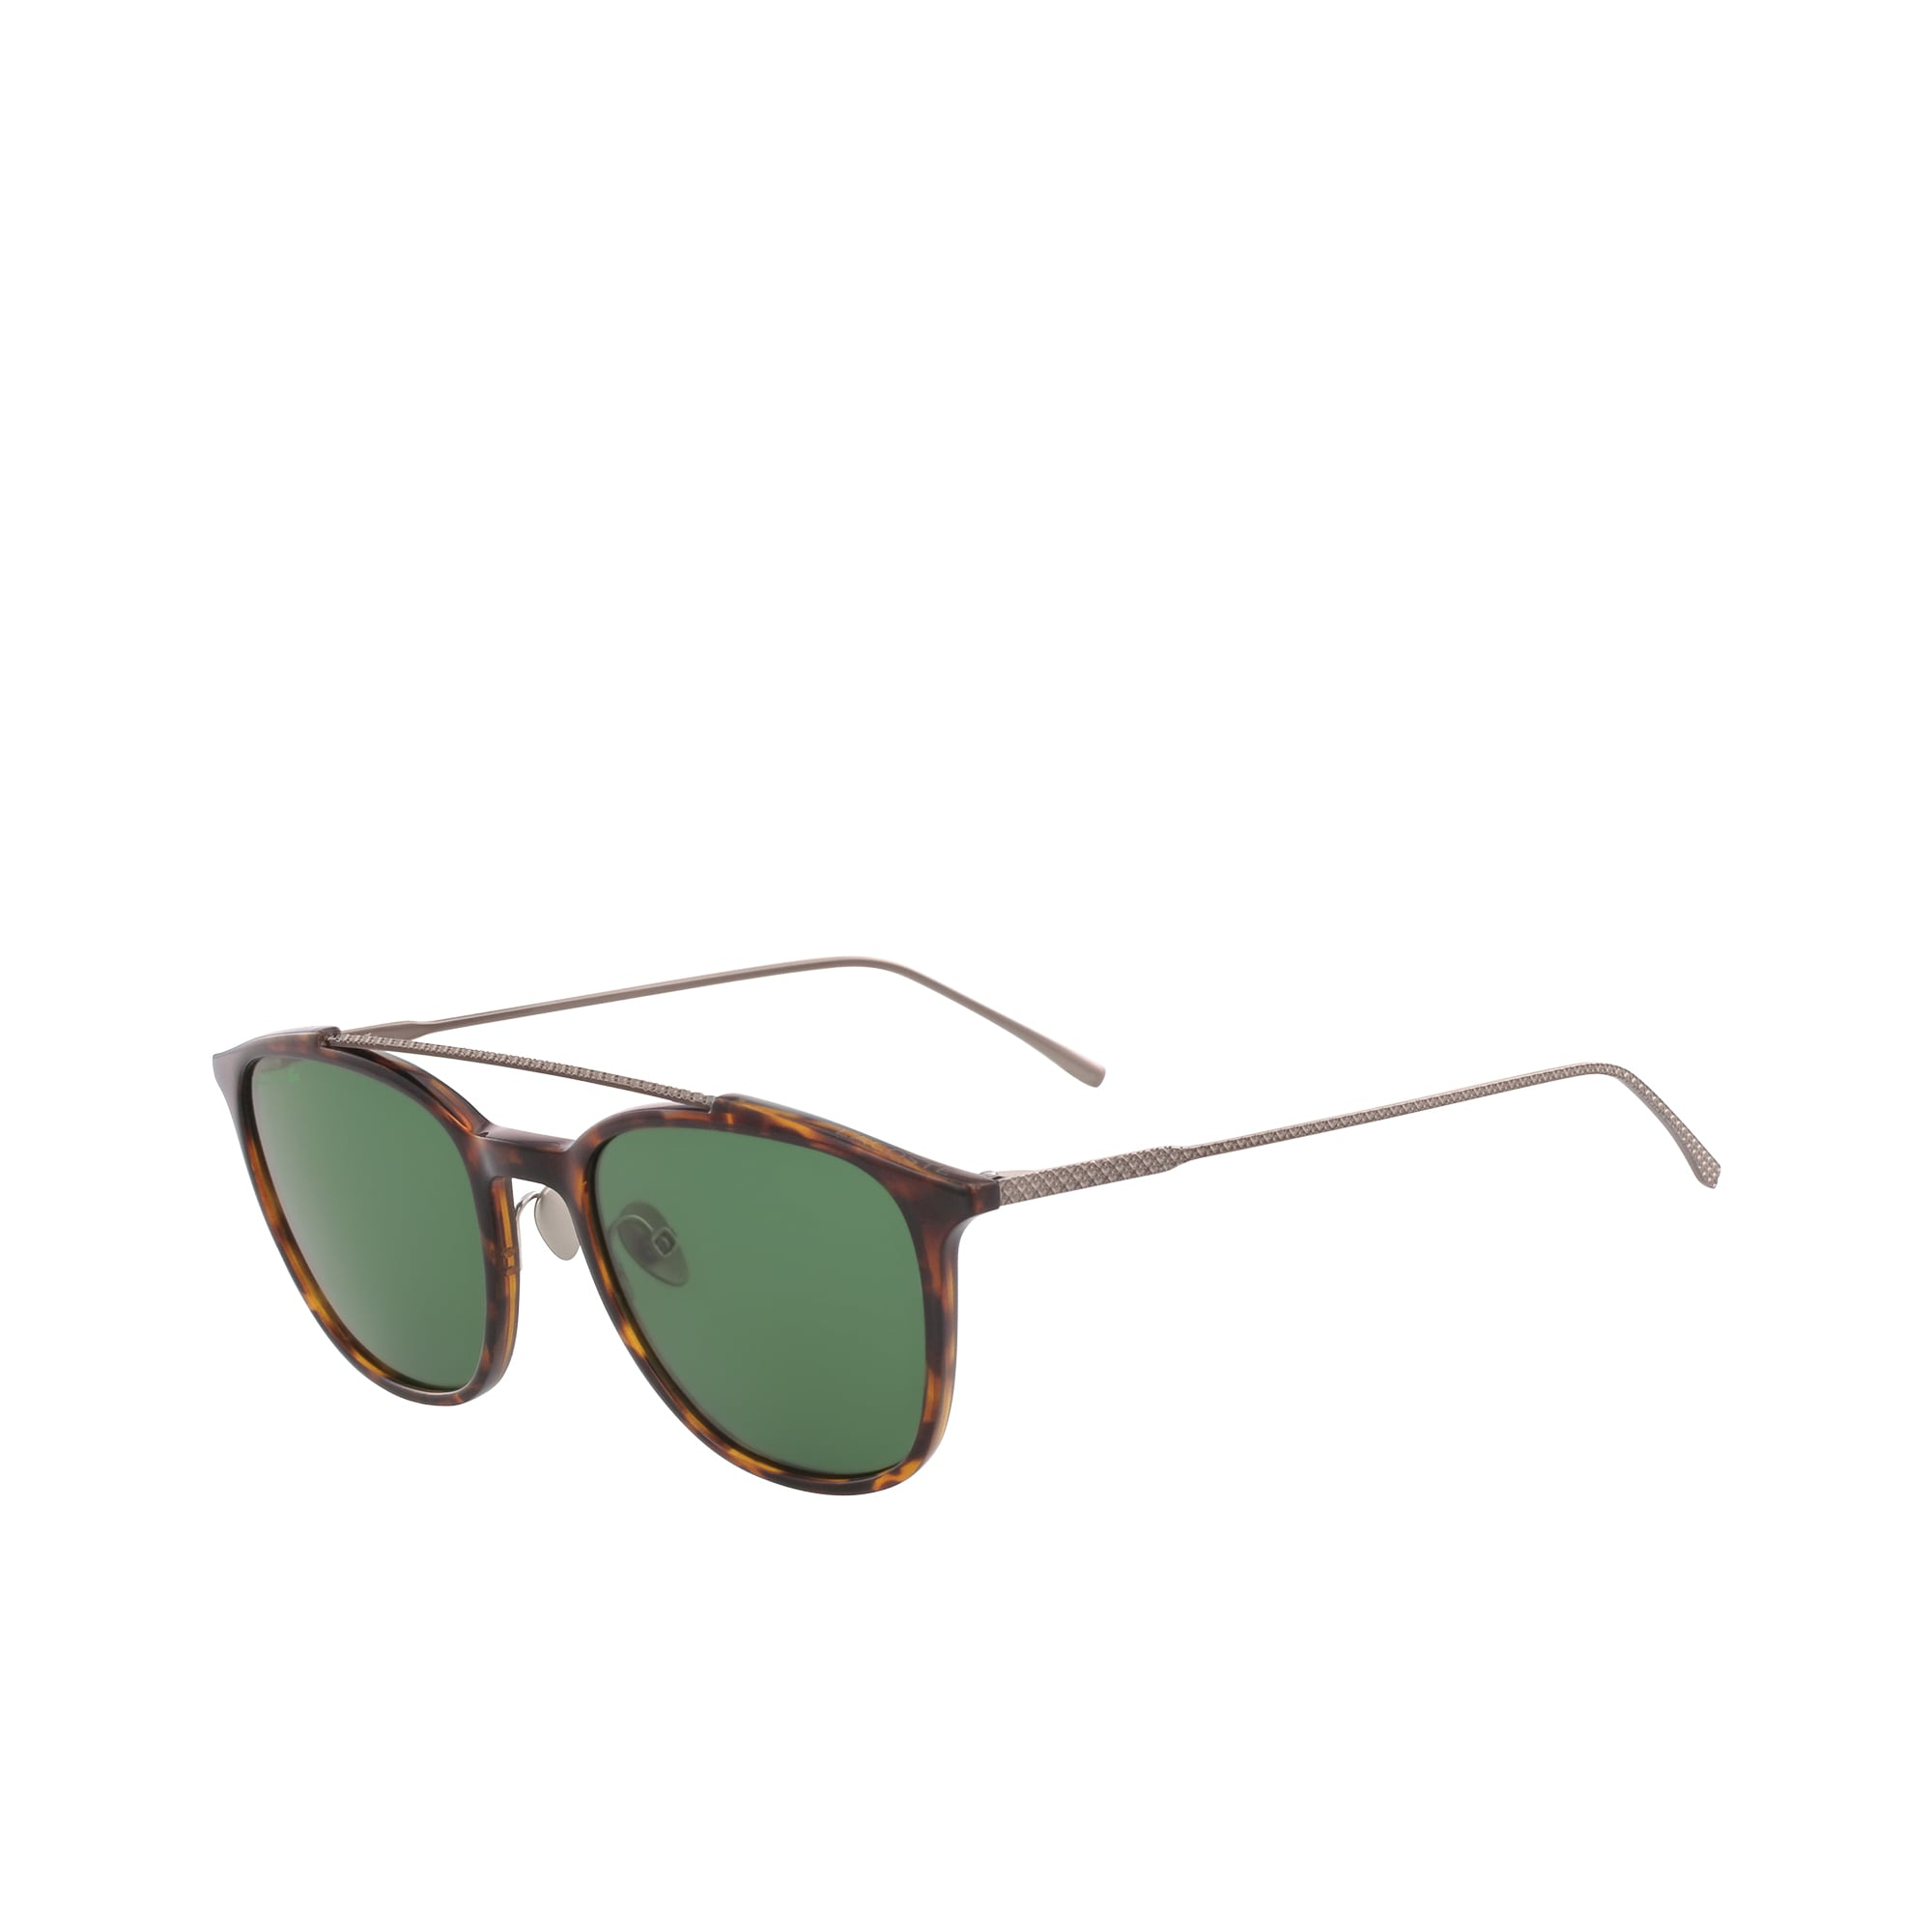 Plastic Ultrathin Sunglasses